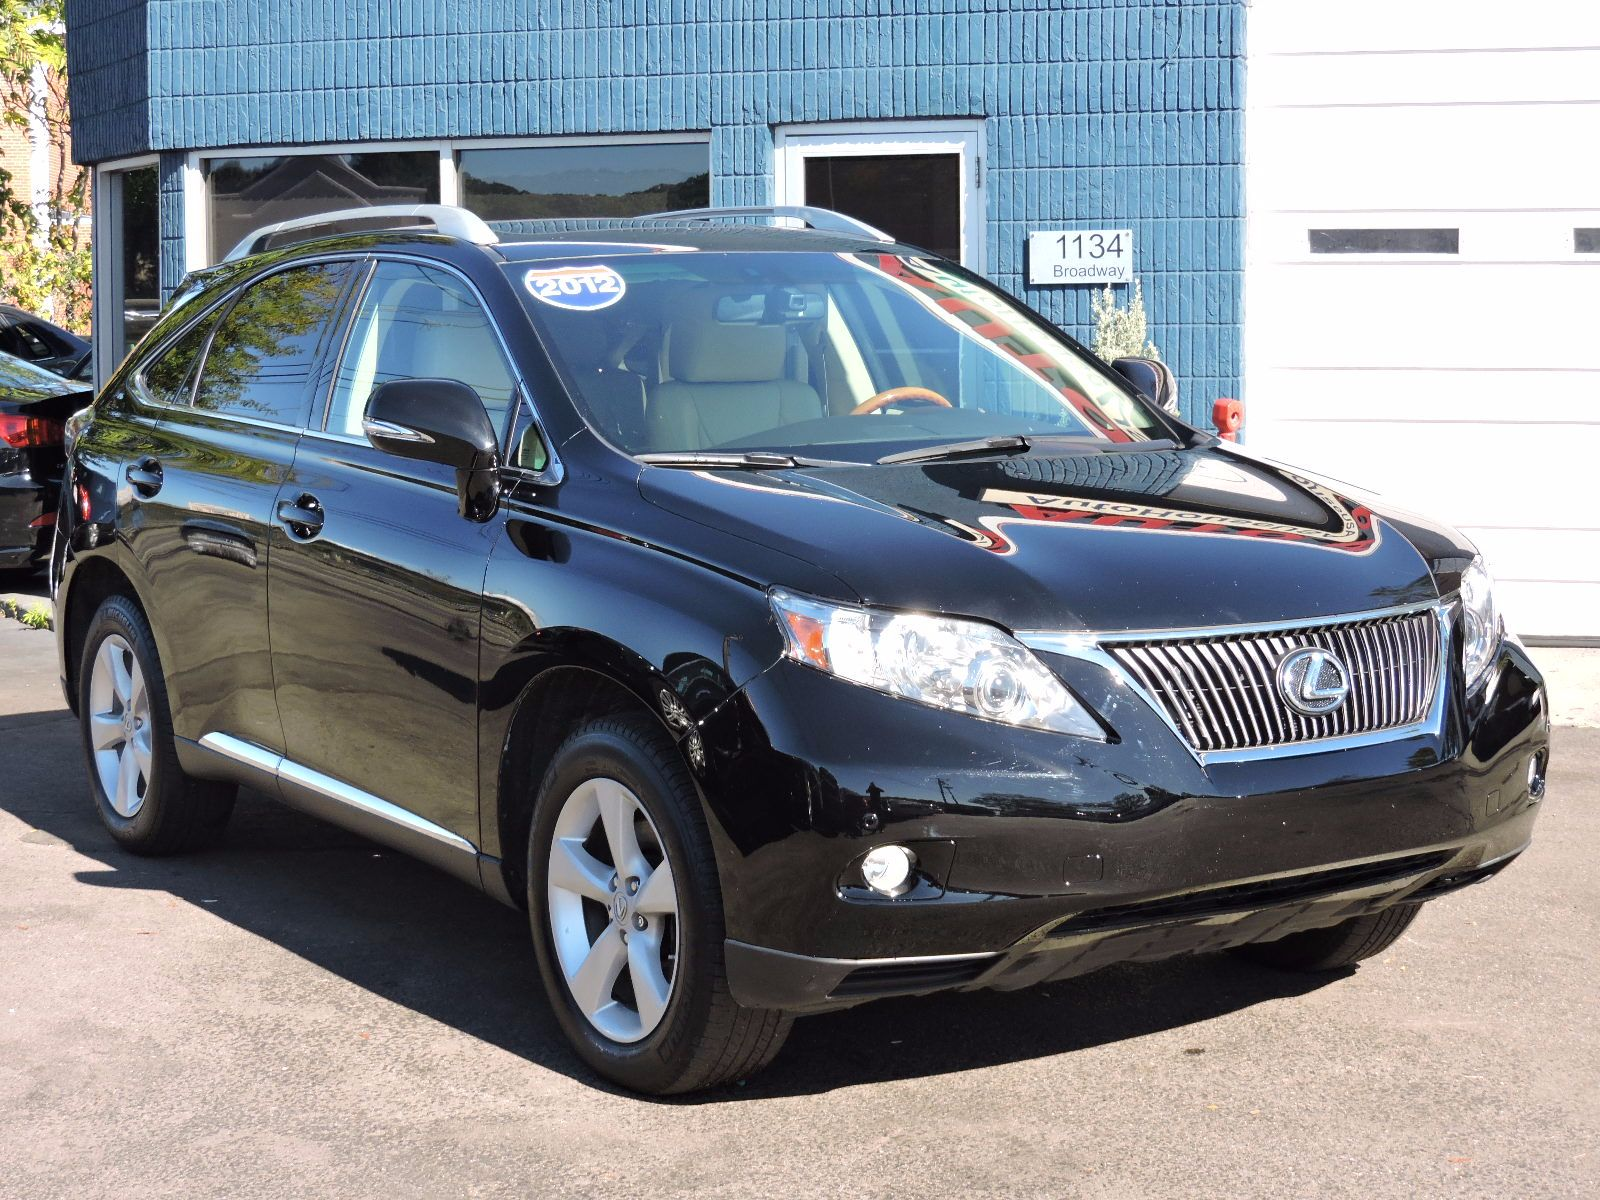 auction carfinder harrisburg rx in ended on en auto lot certificate pa of vin auctions copart salvage online lexus